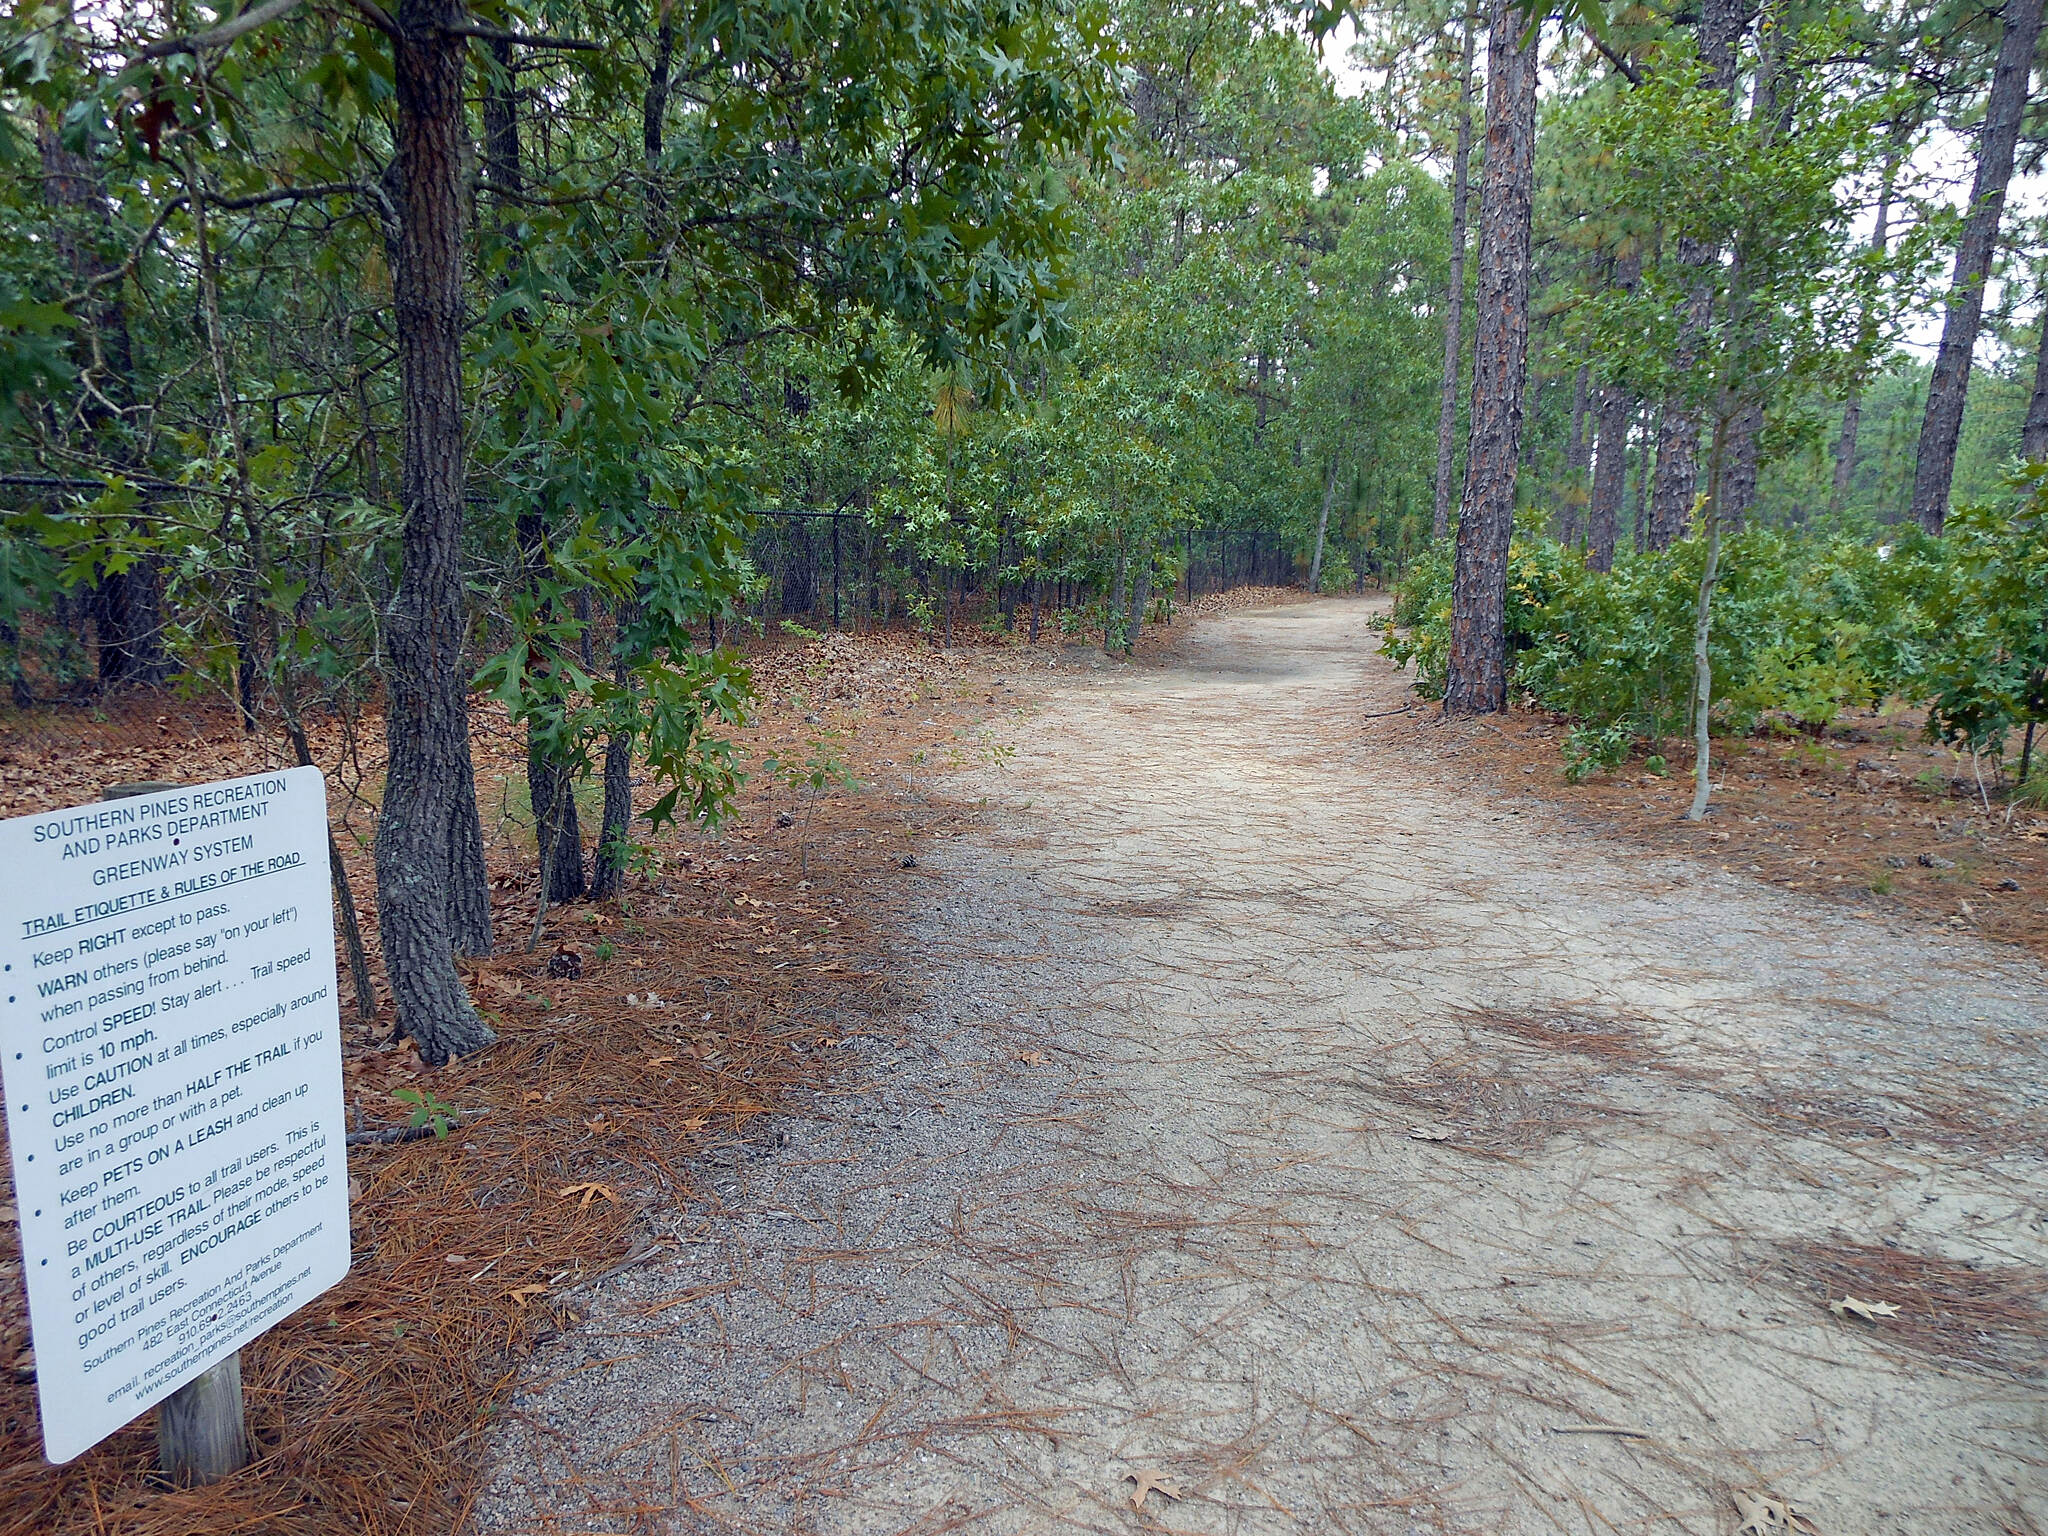 Forest Creek Trail Forest Creek Trail, Southern Pines, NC Typical view along the trail - longleaf pines and sandy surface. Sand is deep and slow in many areas.